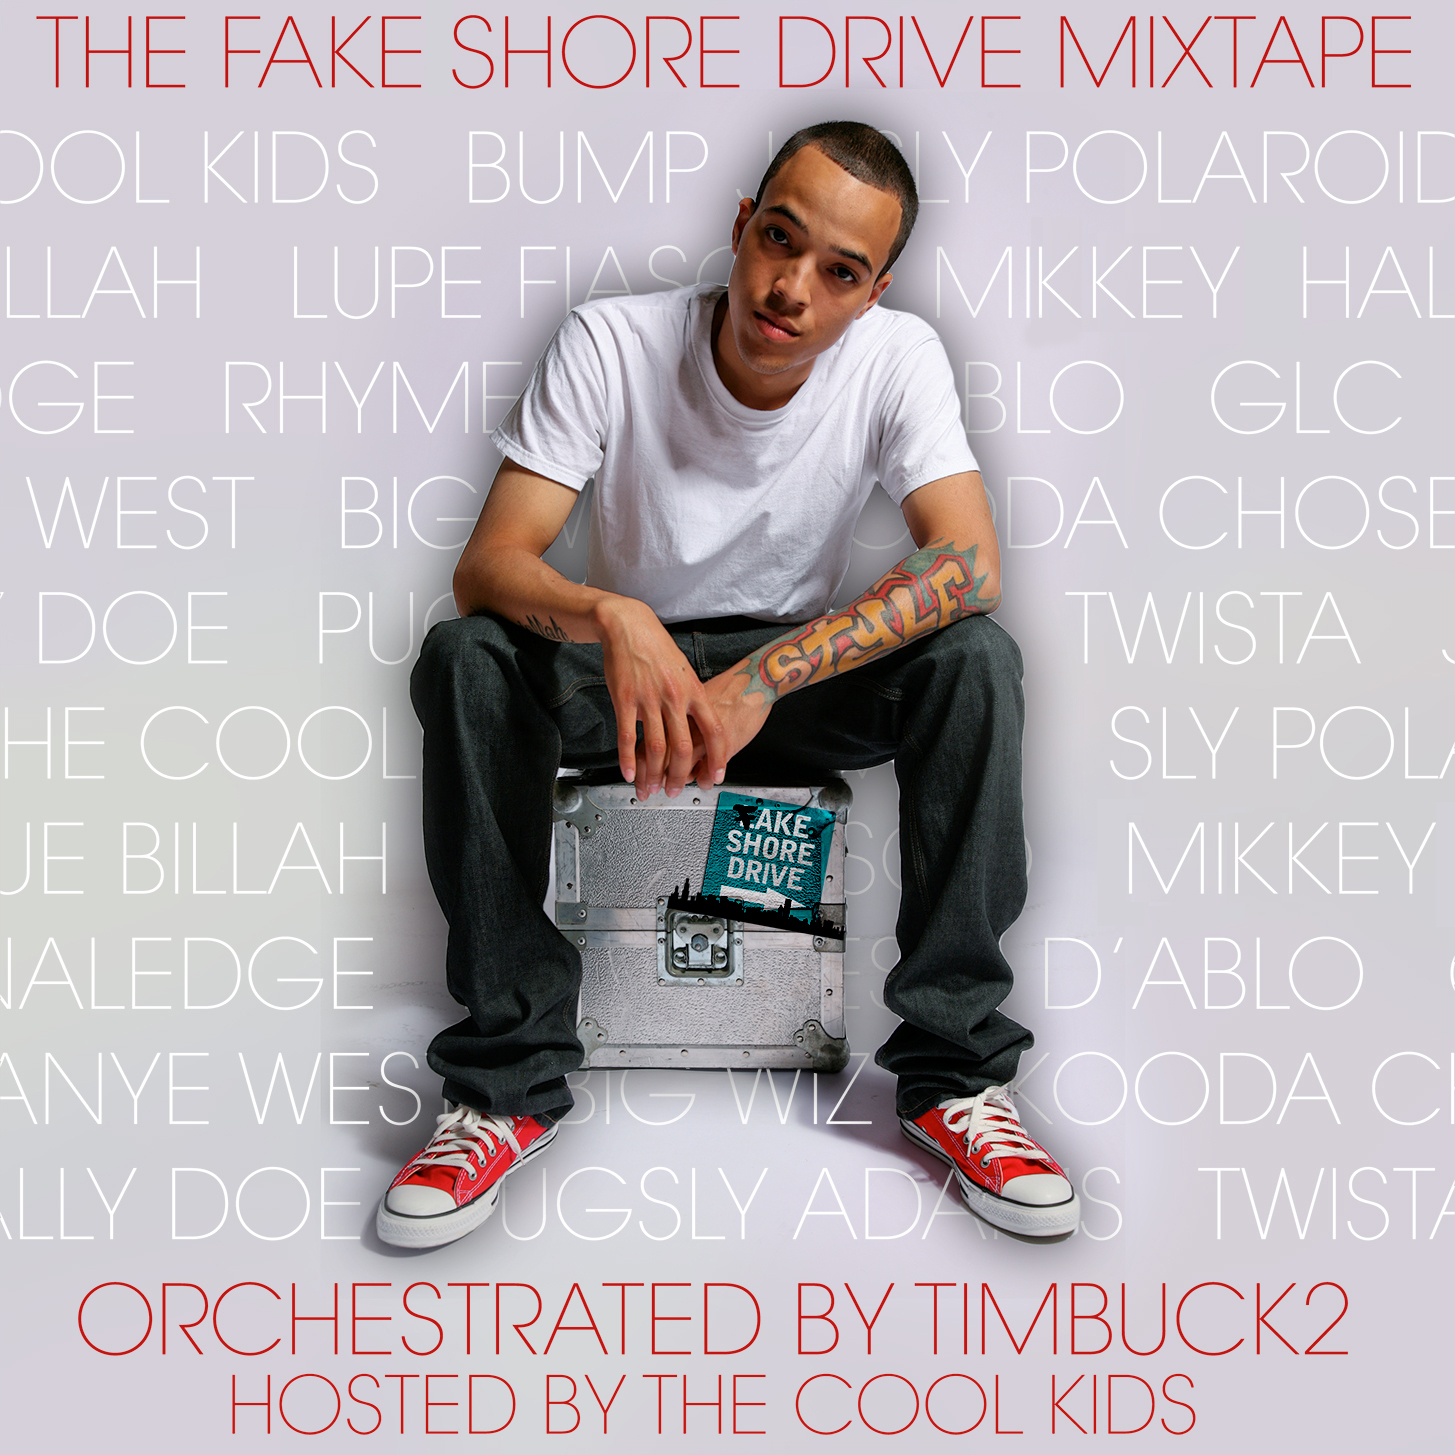 Fake Shore Drive Mixtape Orchestrated by TIMBUCK2 Hosted by The Cool Kids ft. J. Ivy on Hard Times